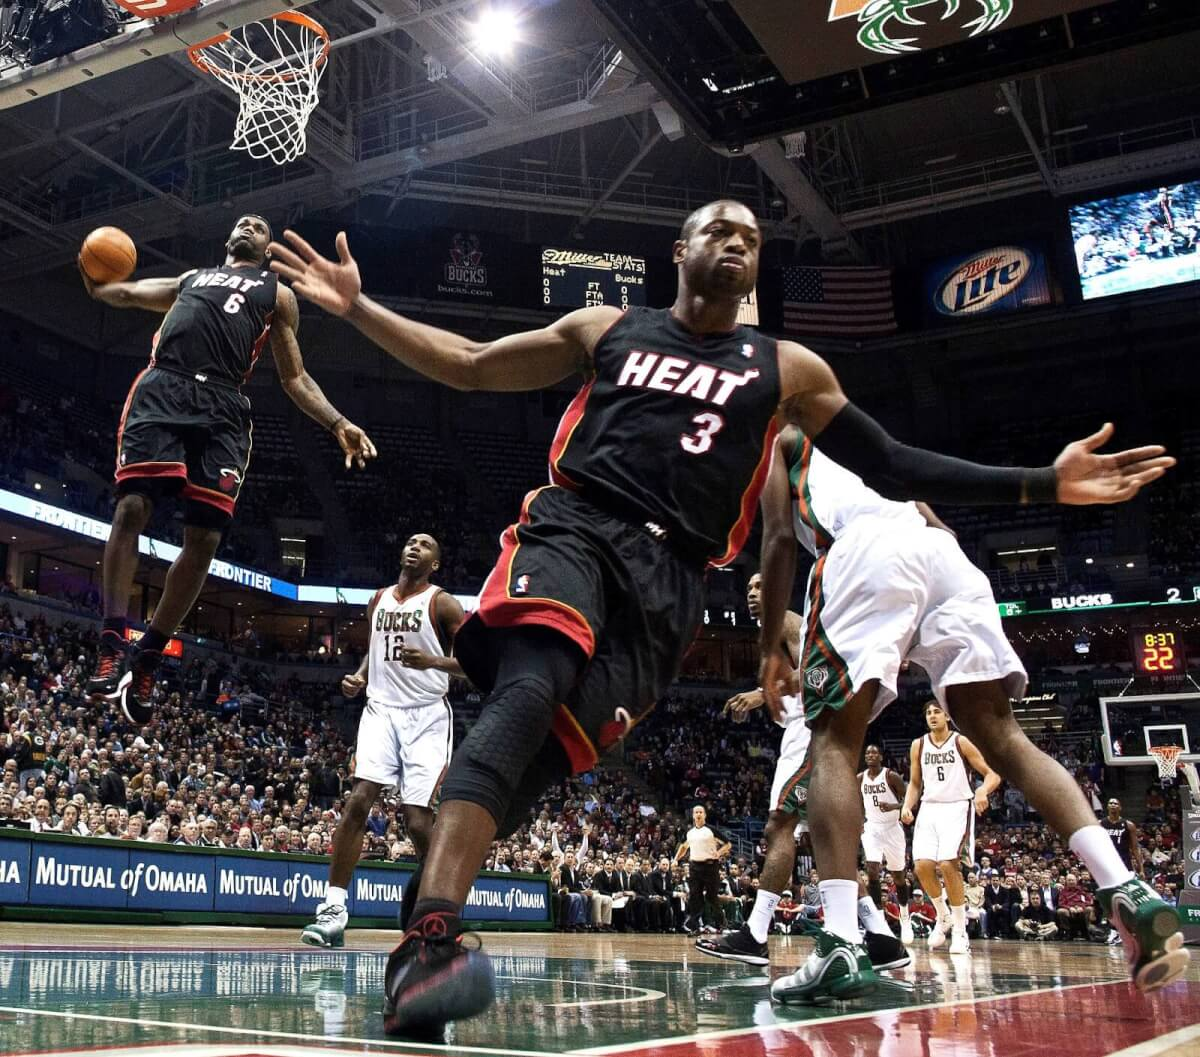 Best Lens for Sports Photography Pictures - LeBron James Rises Up for a Dunk - Morry Gash, AP